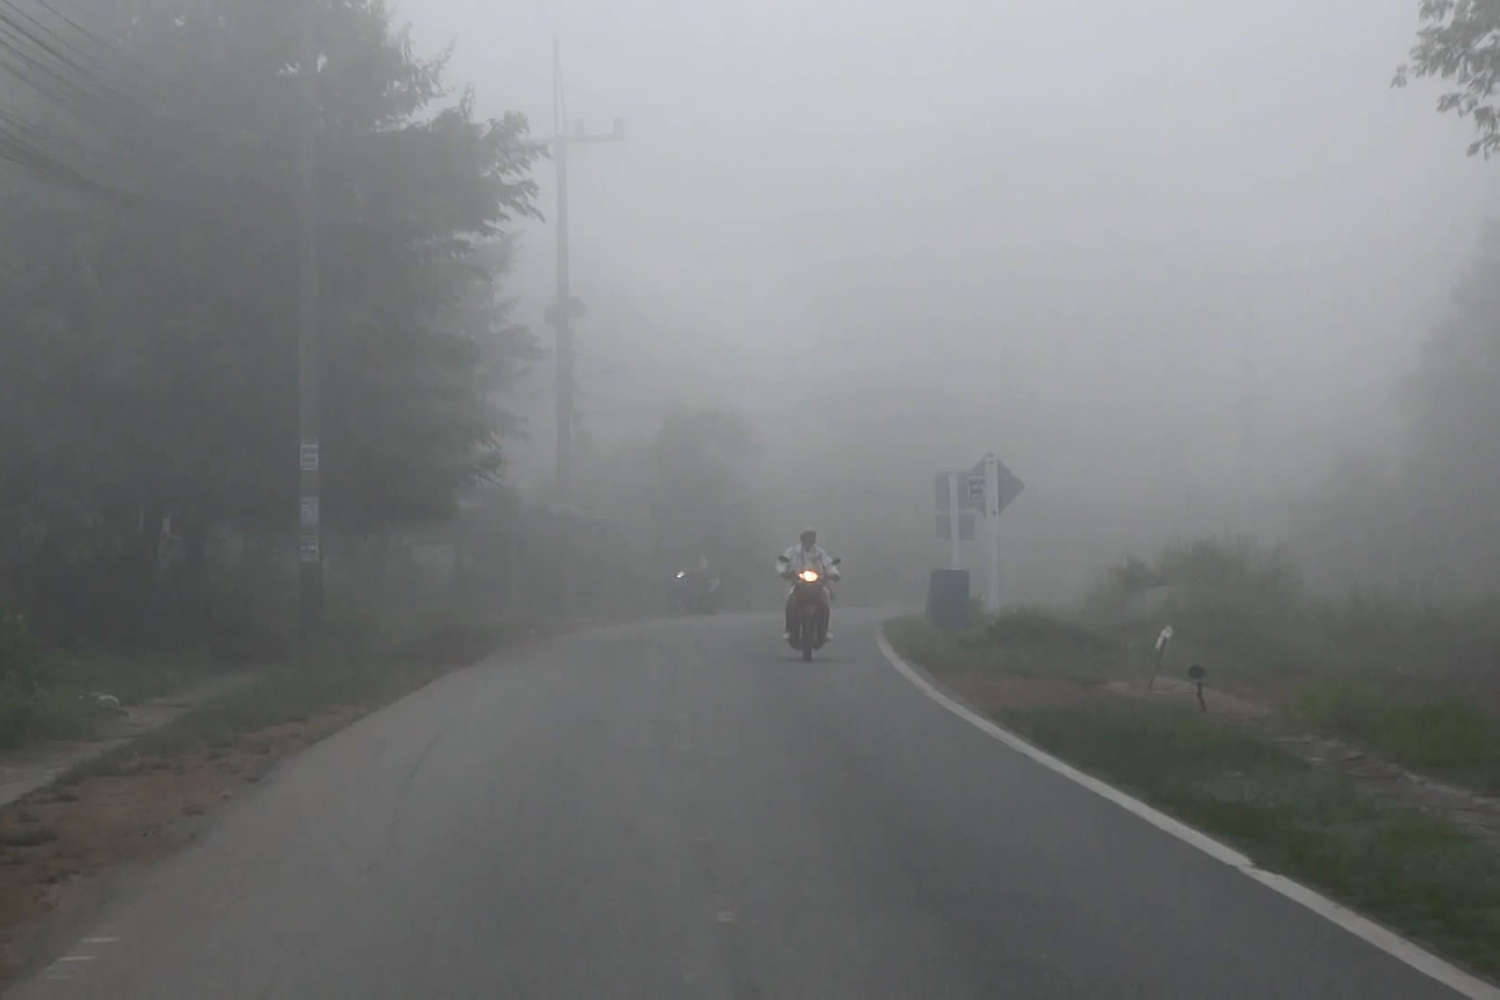 A motorcyclist in Hat Yai district in Songkhla rides on a road shrouded by haze from Indonesian forest fires. (Photo by Assawin Pakkawan)